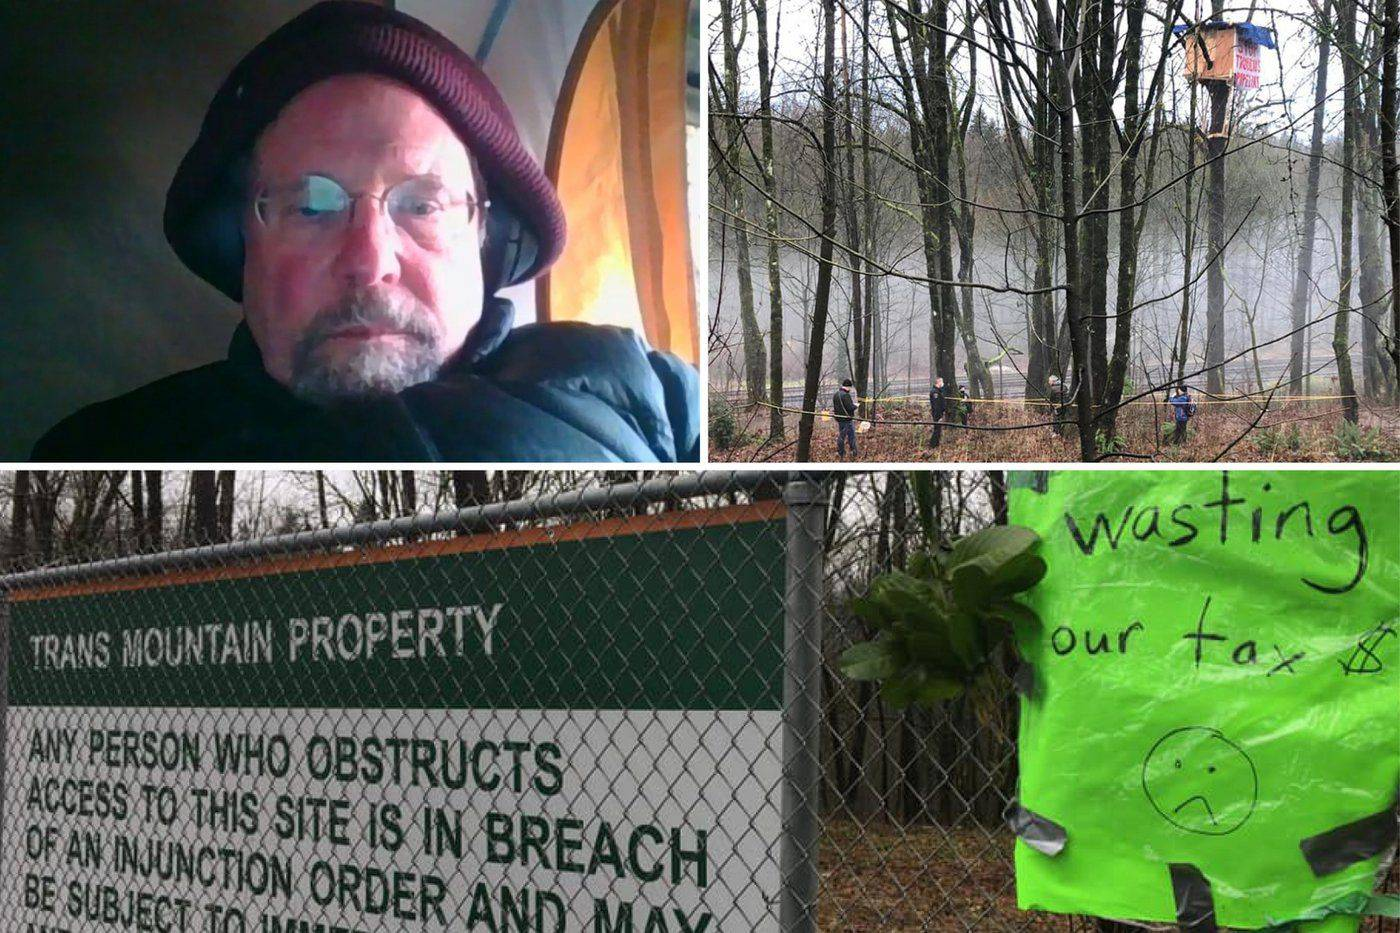 Clockwise from top left: SFU professor Tim Takaro, his treehouse protest site along the TMX route in Burnaby and a sign put up warning of an injunction order in effect. (Twitter / Facebook / Protect the Planet Stop TMX)